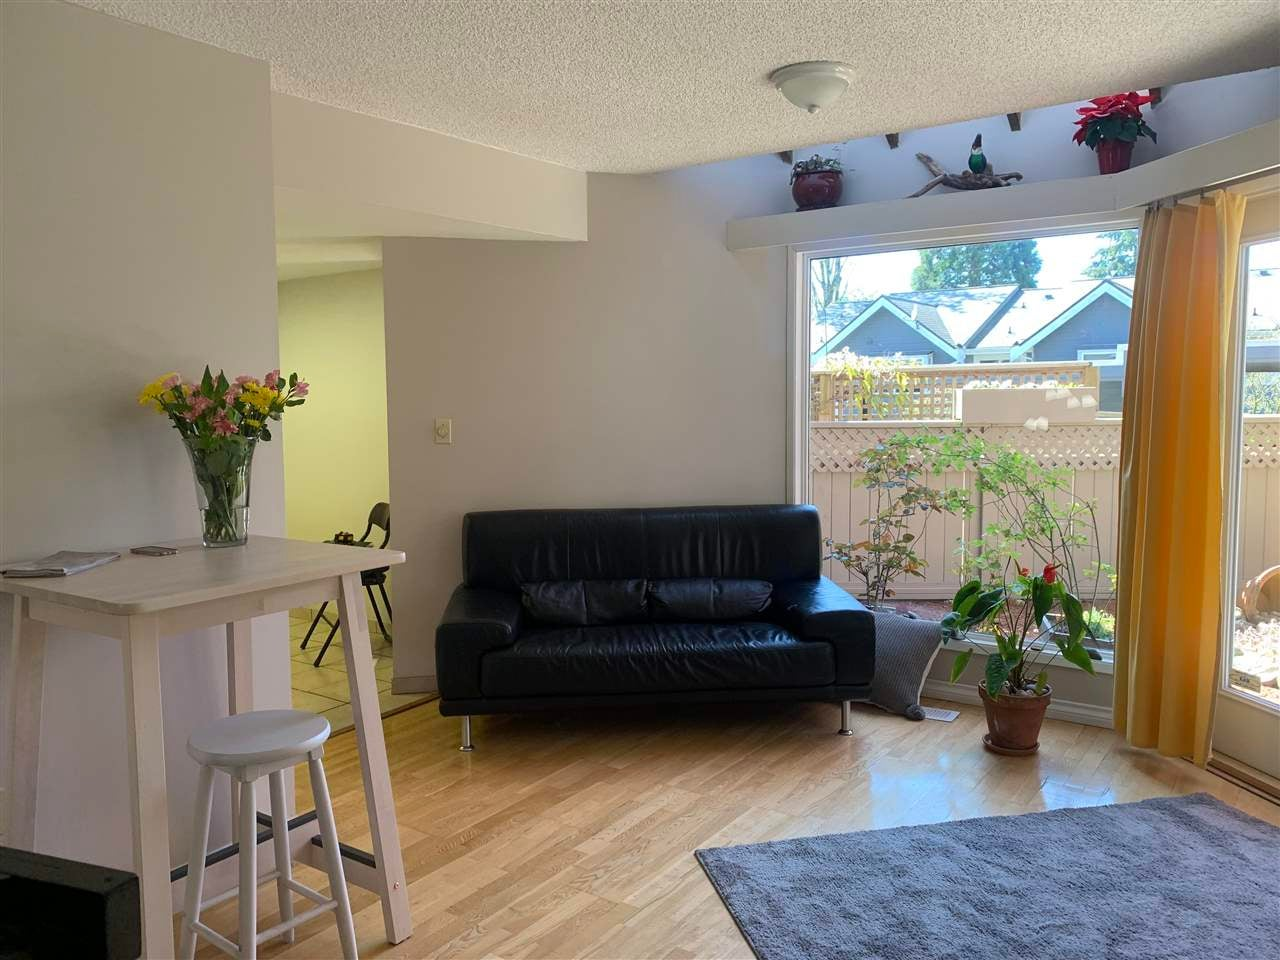 2 230 W 15TH STREET - Central Lonsdale Townhouse for sale, 3 Bedrooms (R2572749) - #10